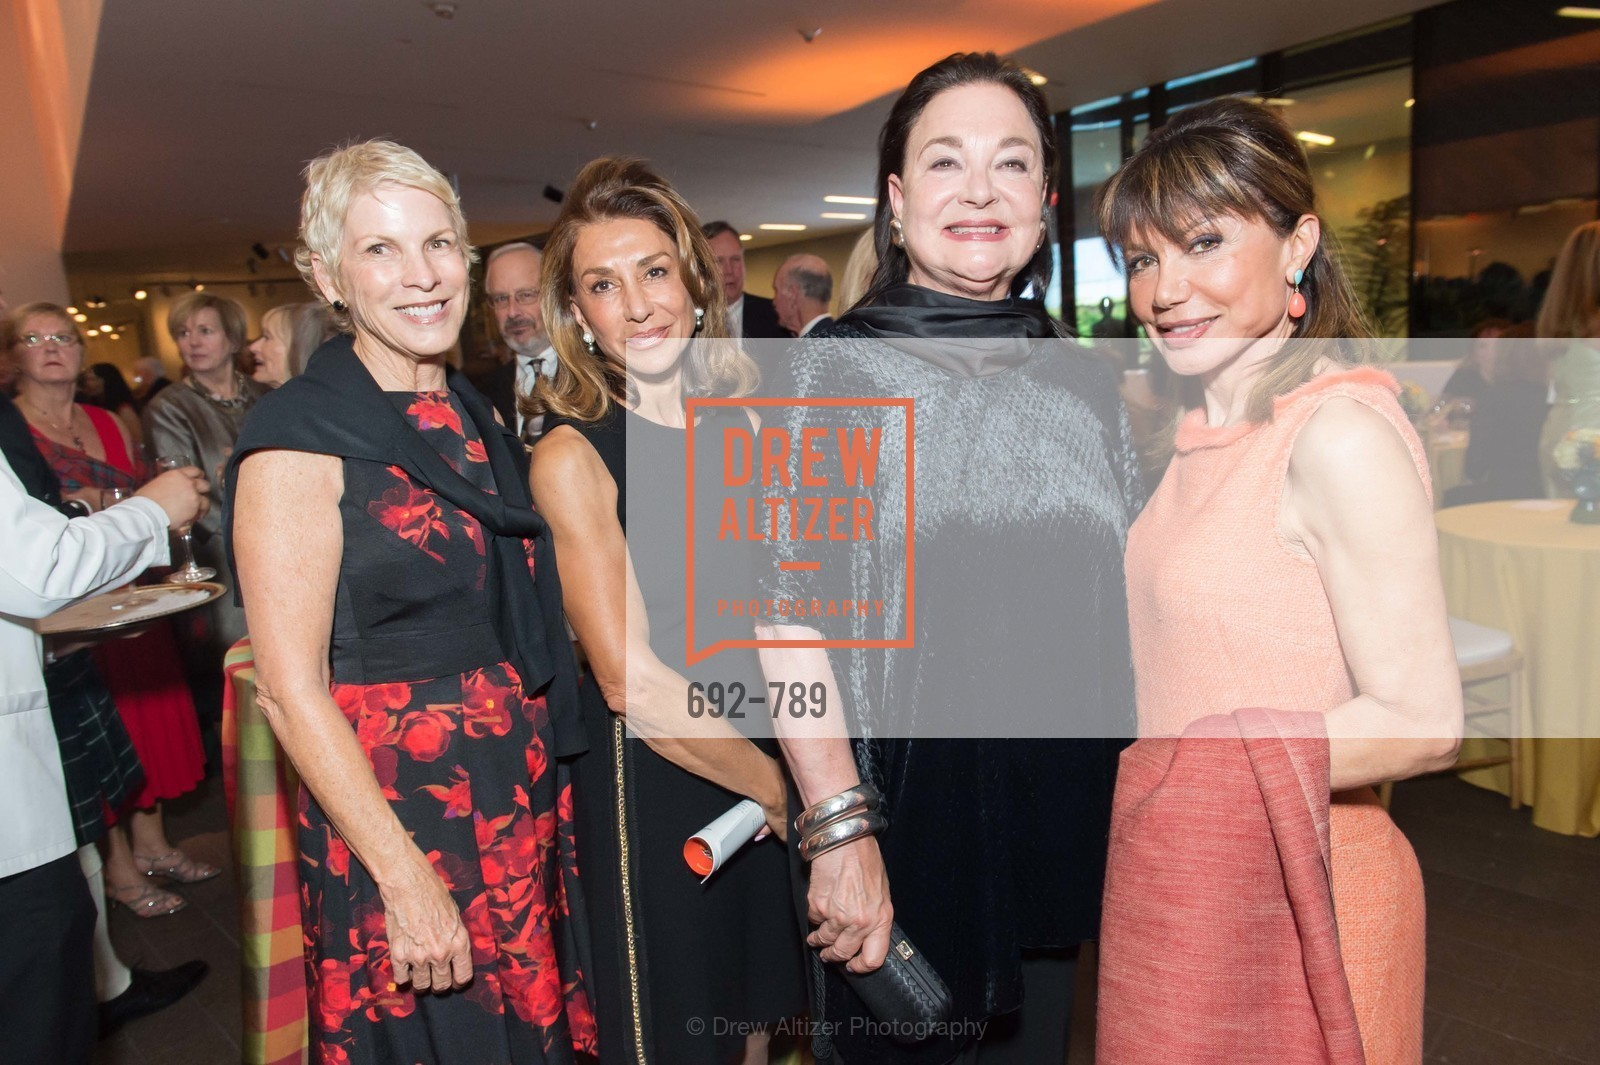 Wynn Olsen, Amie Royo, Elizabeth Merrill, Azita Nujica Beavers, ALONZO KING LINE'S Ballet Spring Gala 2015, US, April 12th, 2015,Drew Altizer, Drew Altizer Photography, full-service agency, private events, San Francisco photographer, photographer california